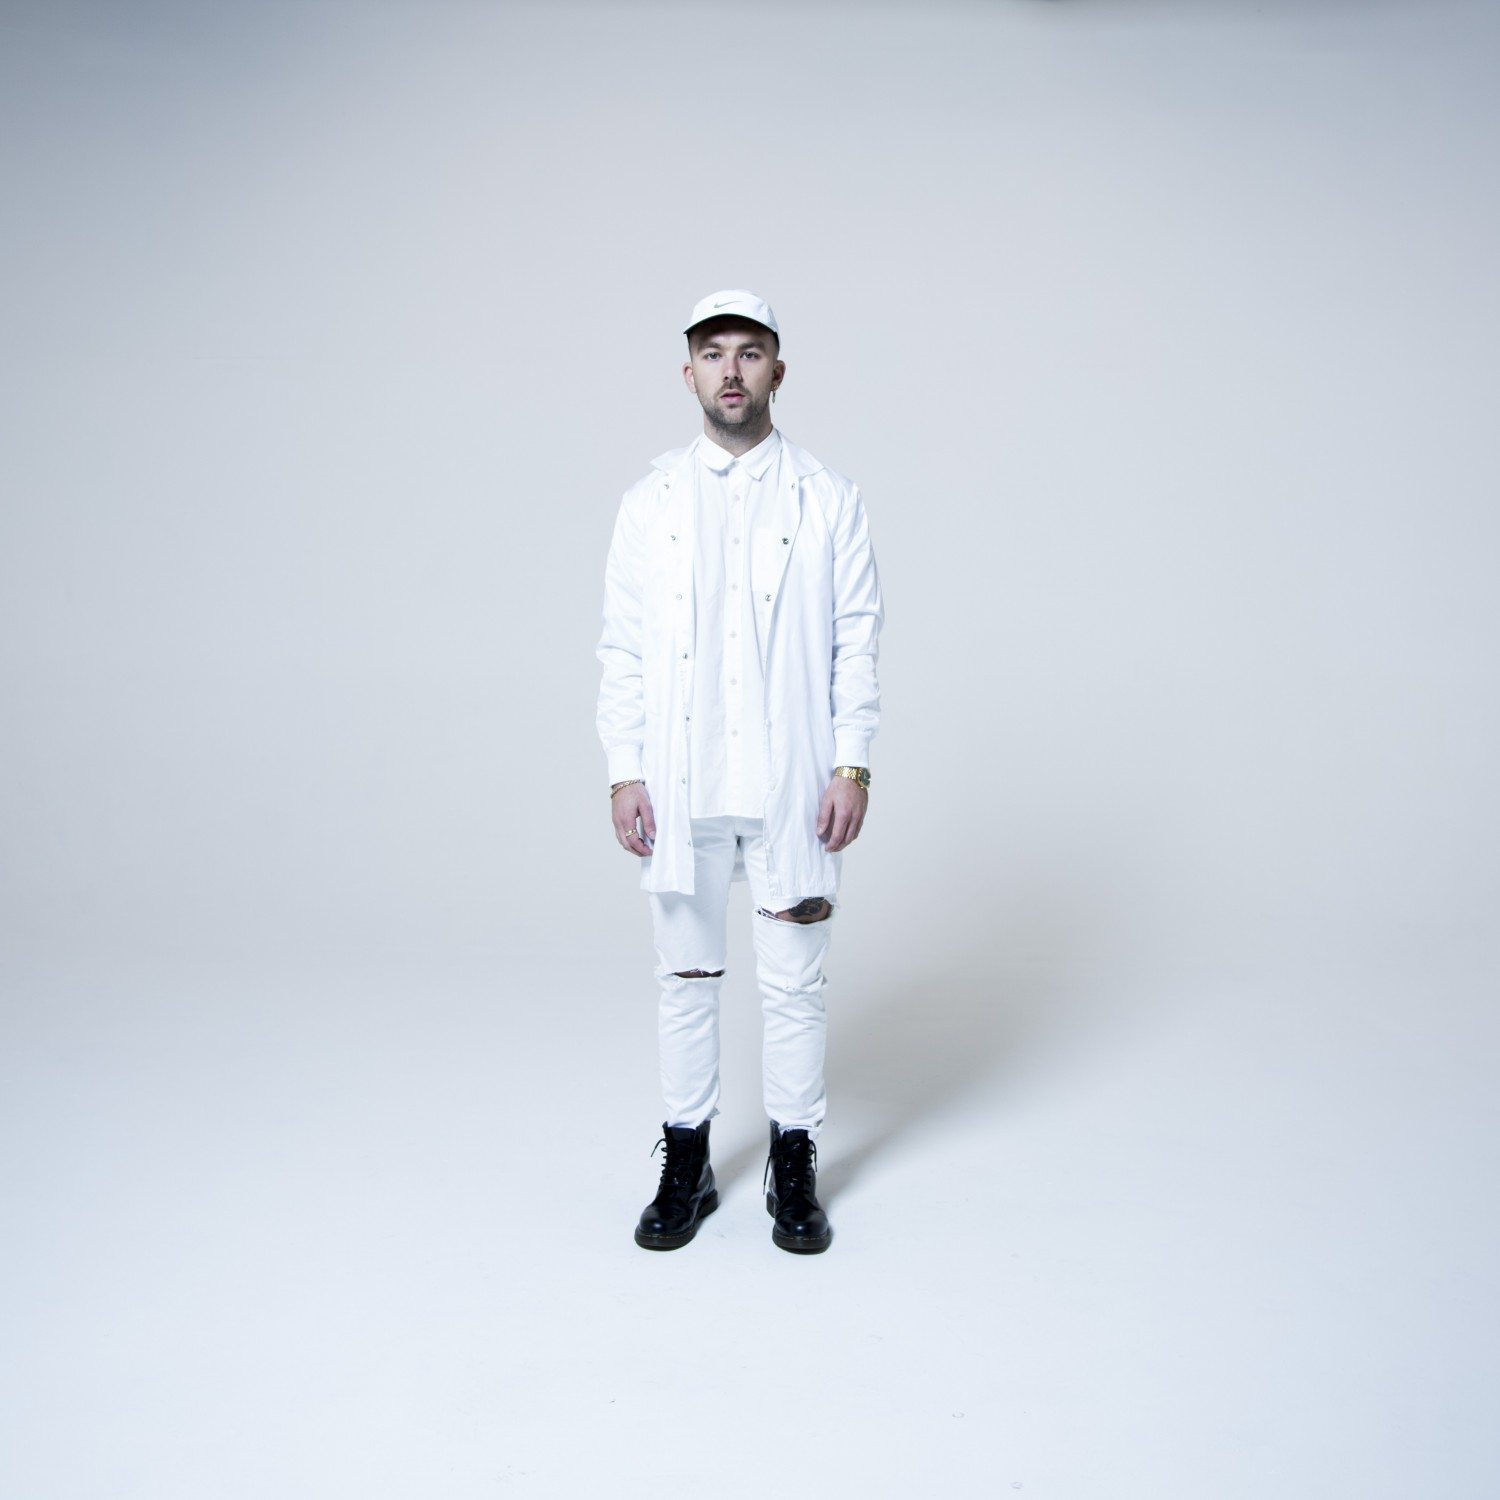 SonReal on his Oct. 9 show, New York City, Canada, Jon Bellion and more